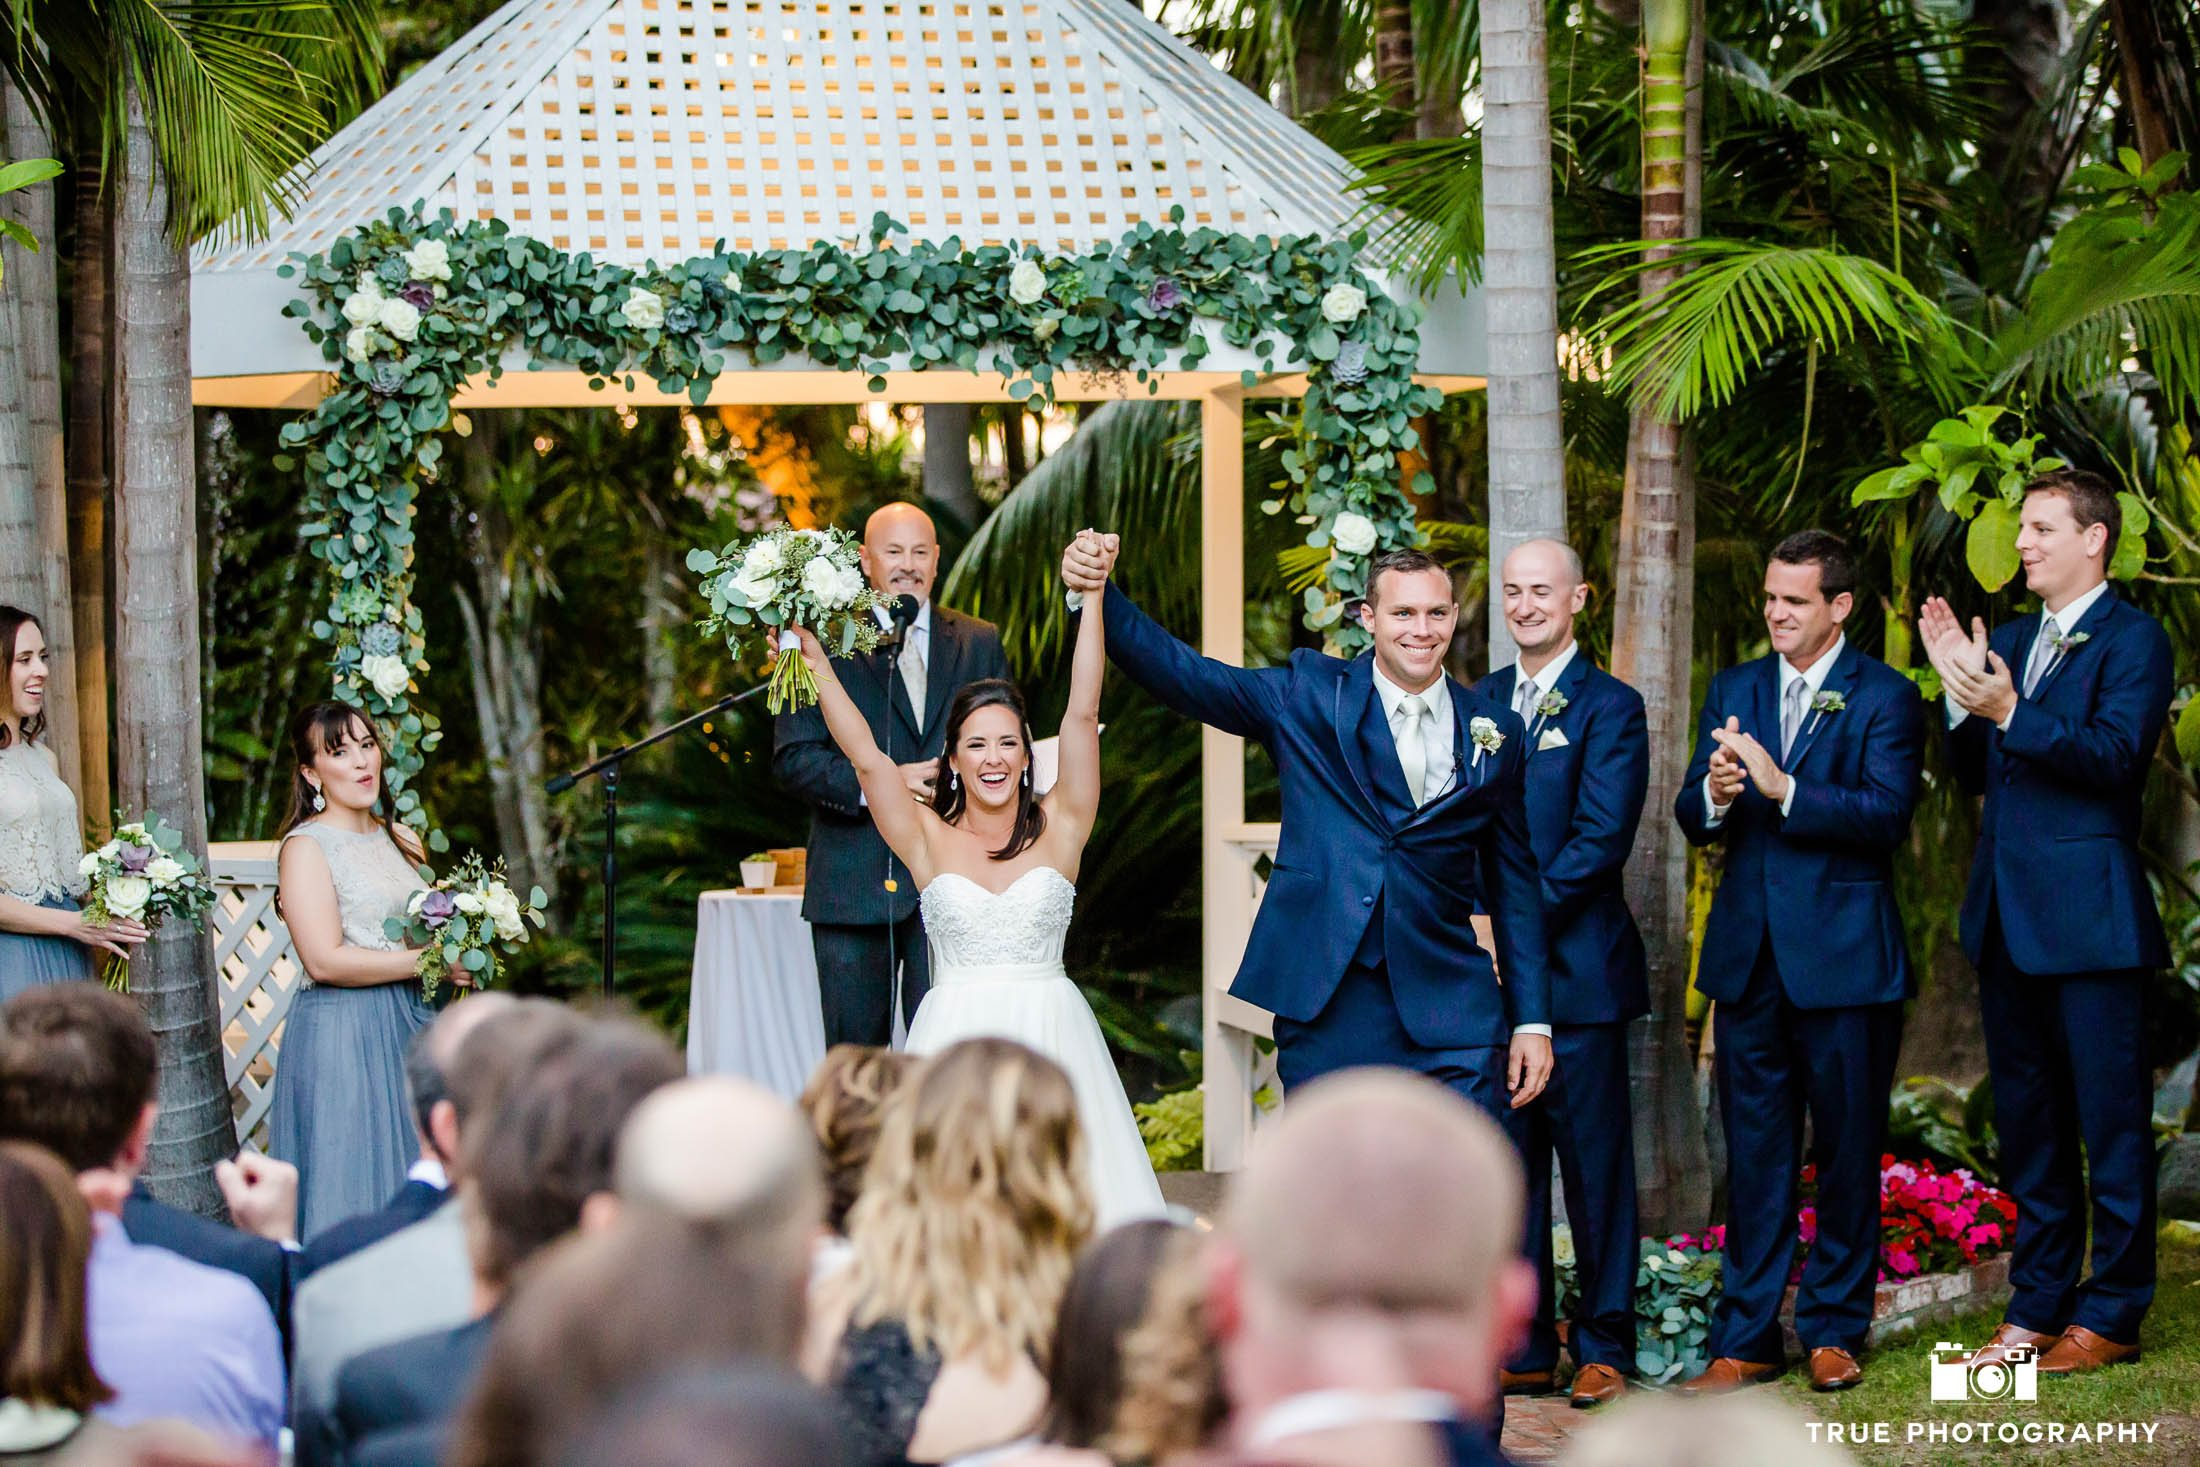 Bride and Groom cheer as they walk down aisle after wedding ceremony